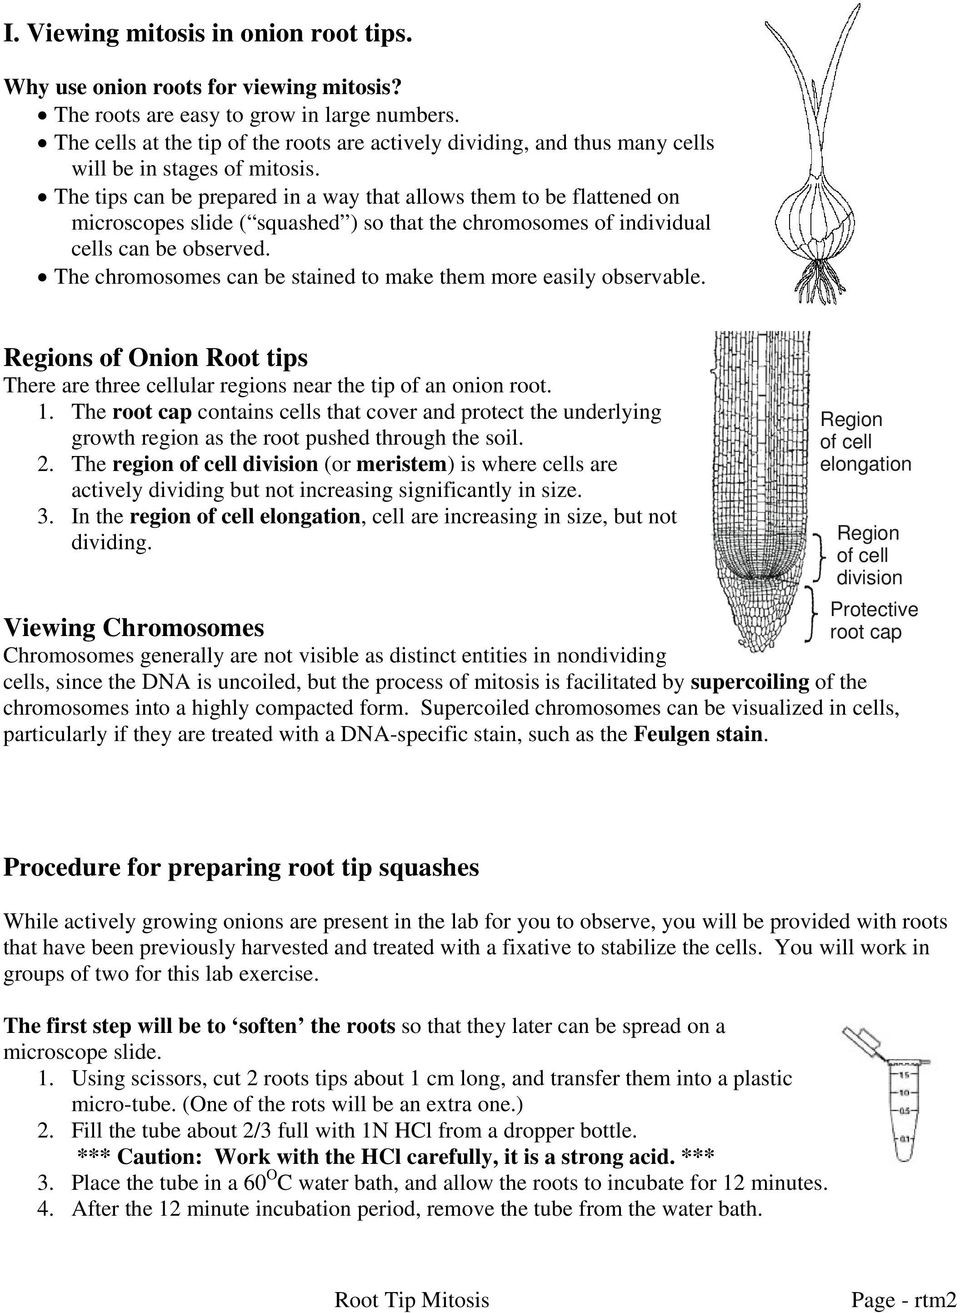 Onion Cell Mitosis Worksheet Answers Mitosis In Ion Root Tip Cells Pdf Free Download